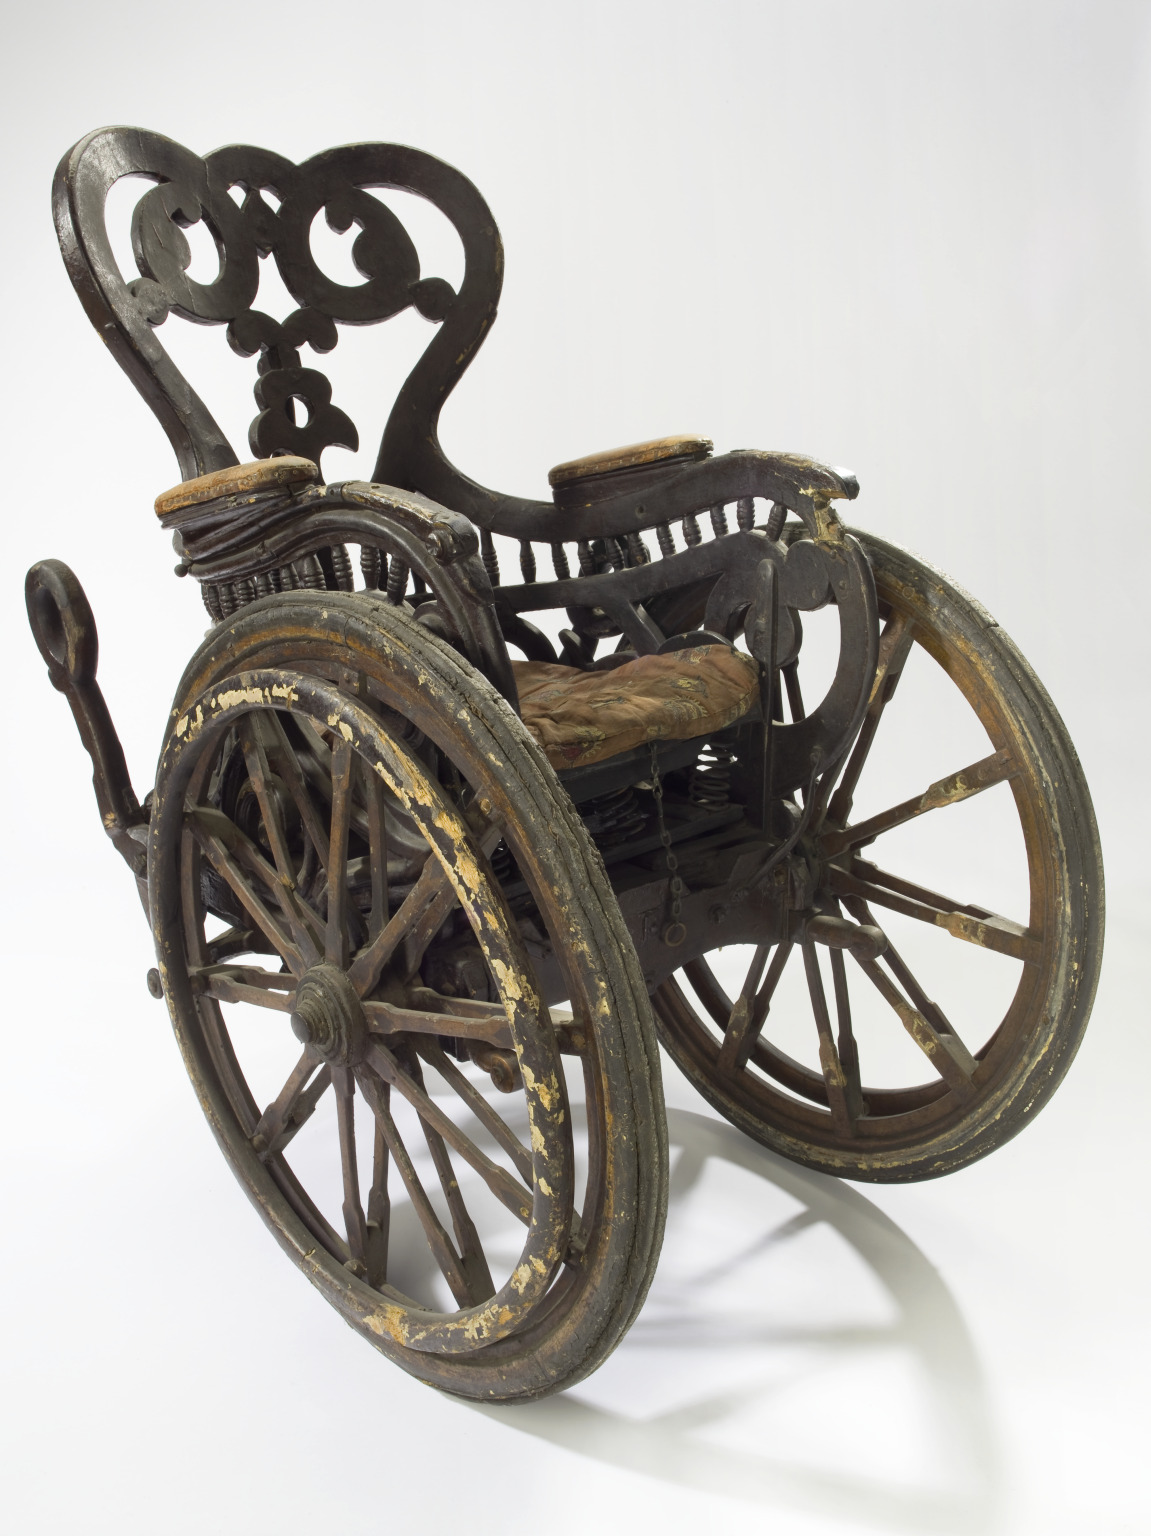 Invalid chair, Europe, 1850-1890:Unlike modern wheelchairs that have four wheels, this chair has three: two large front wheels and one small rear wheel. This means the patient was unable to wheel the chair themselves. They would have had an assistant. The chair is heavy so presumably they would not have gone very far or very fast. This elaborately carved chair dates from the late 1800s. It is made of wood with a sprung padded seat. It was donated to the Wellcome Collections by Liverpool Royal infirmary in 1928.